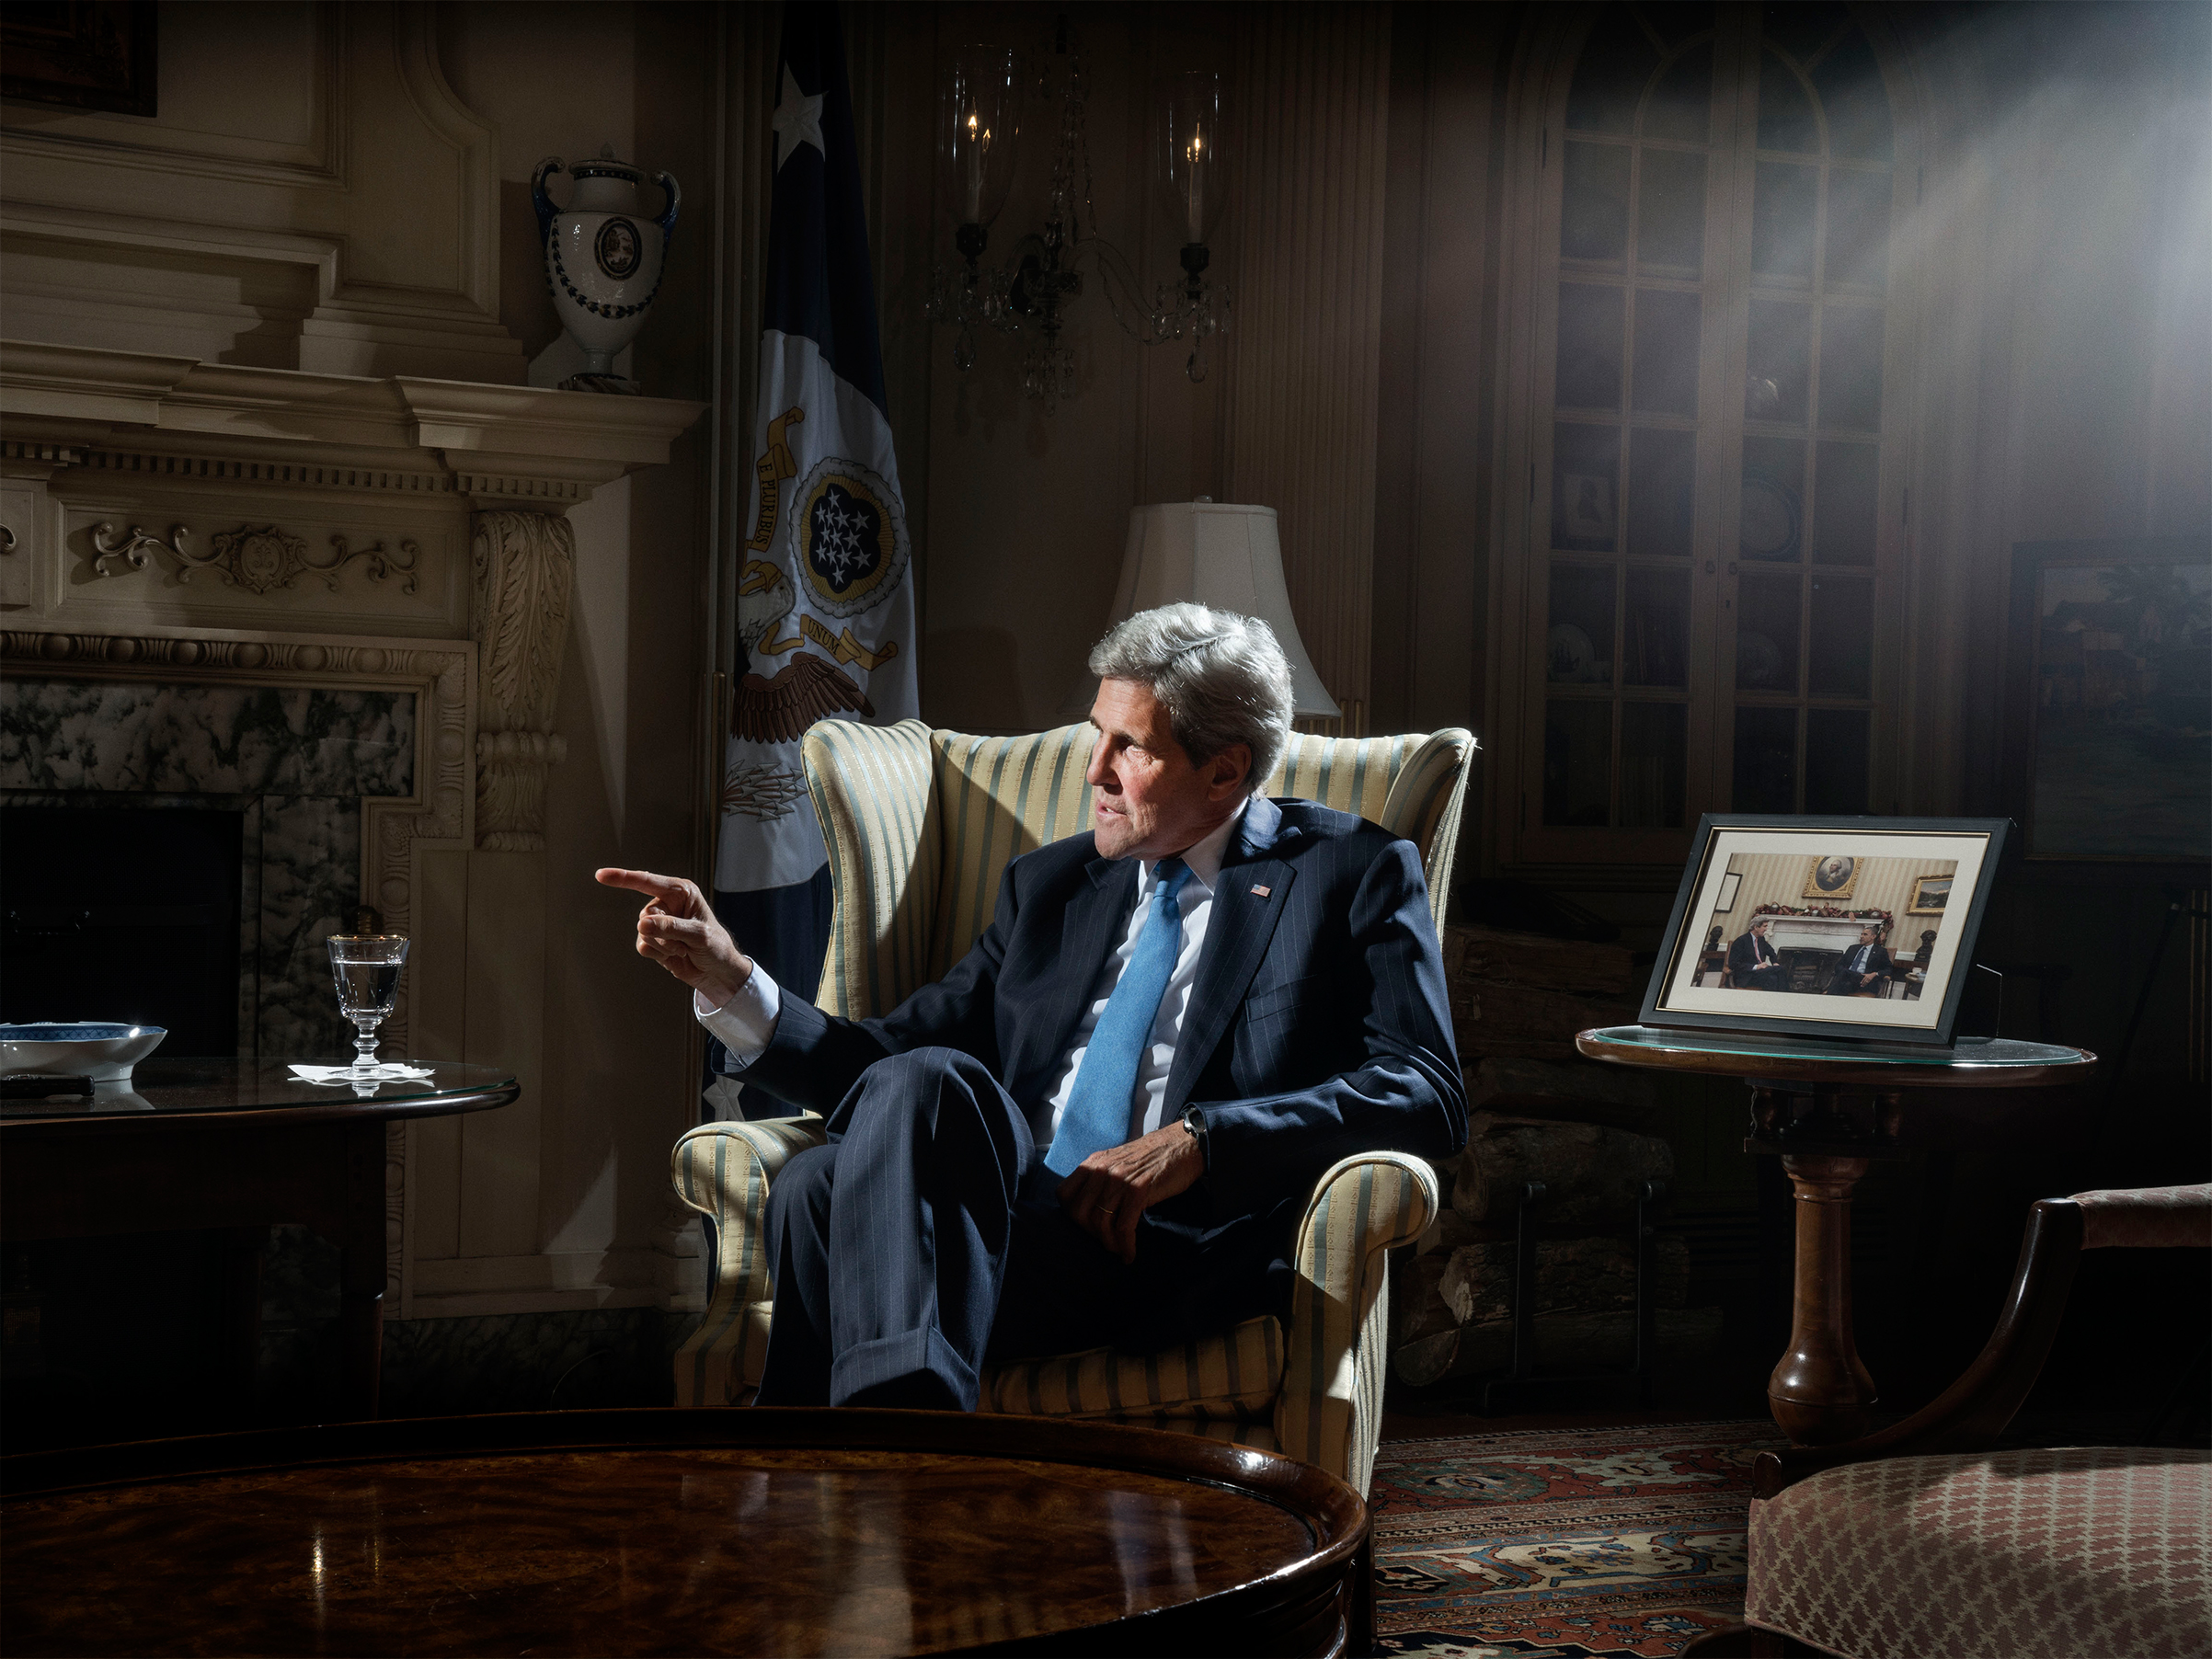 John Kerry photographed in Washington, D.C., on April 1, 2016.